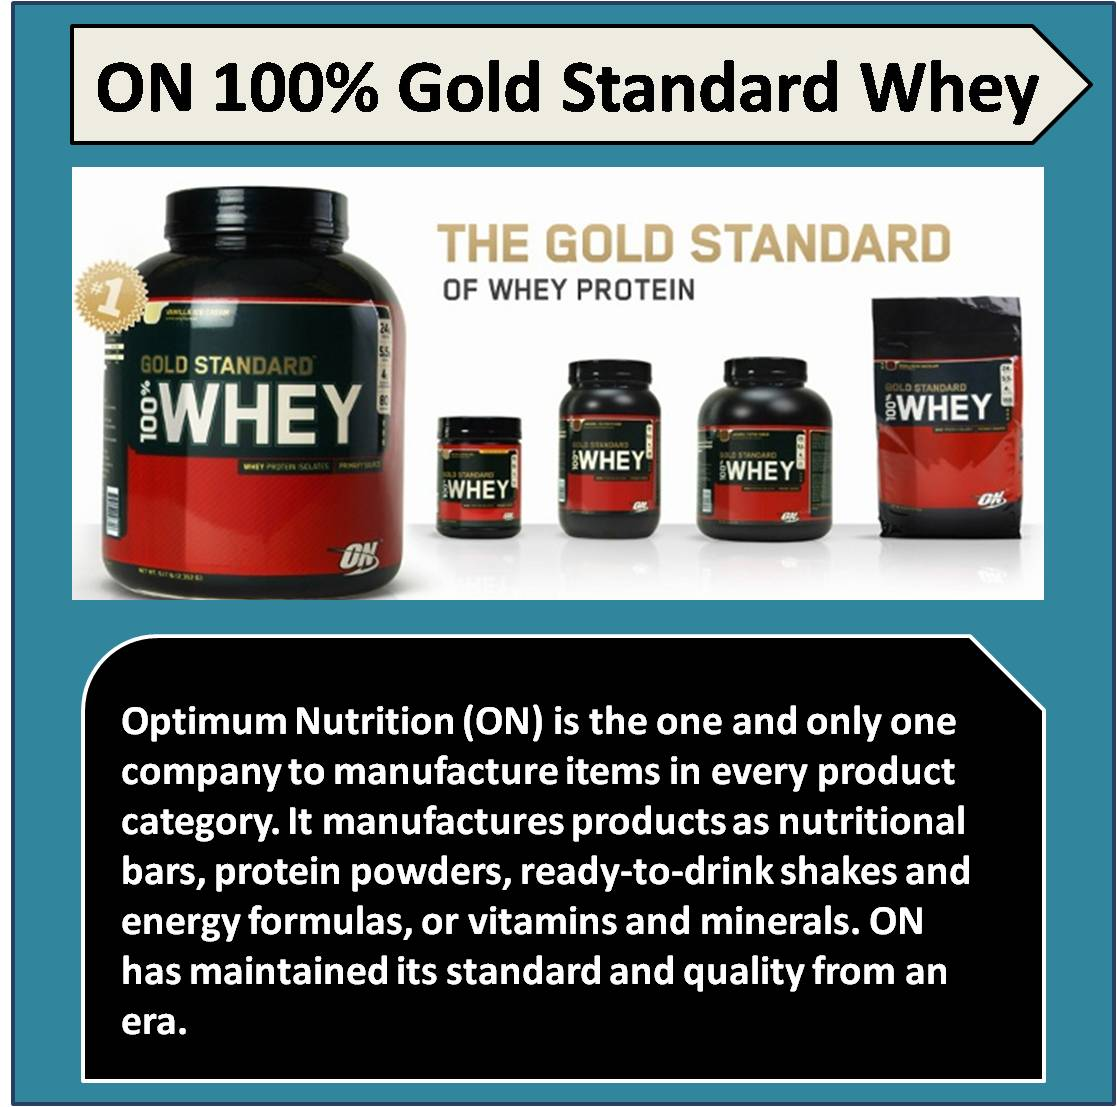 ON 100 percent Gold Standard Whey